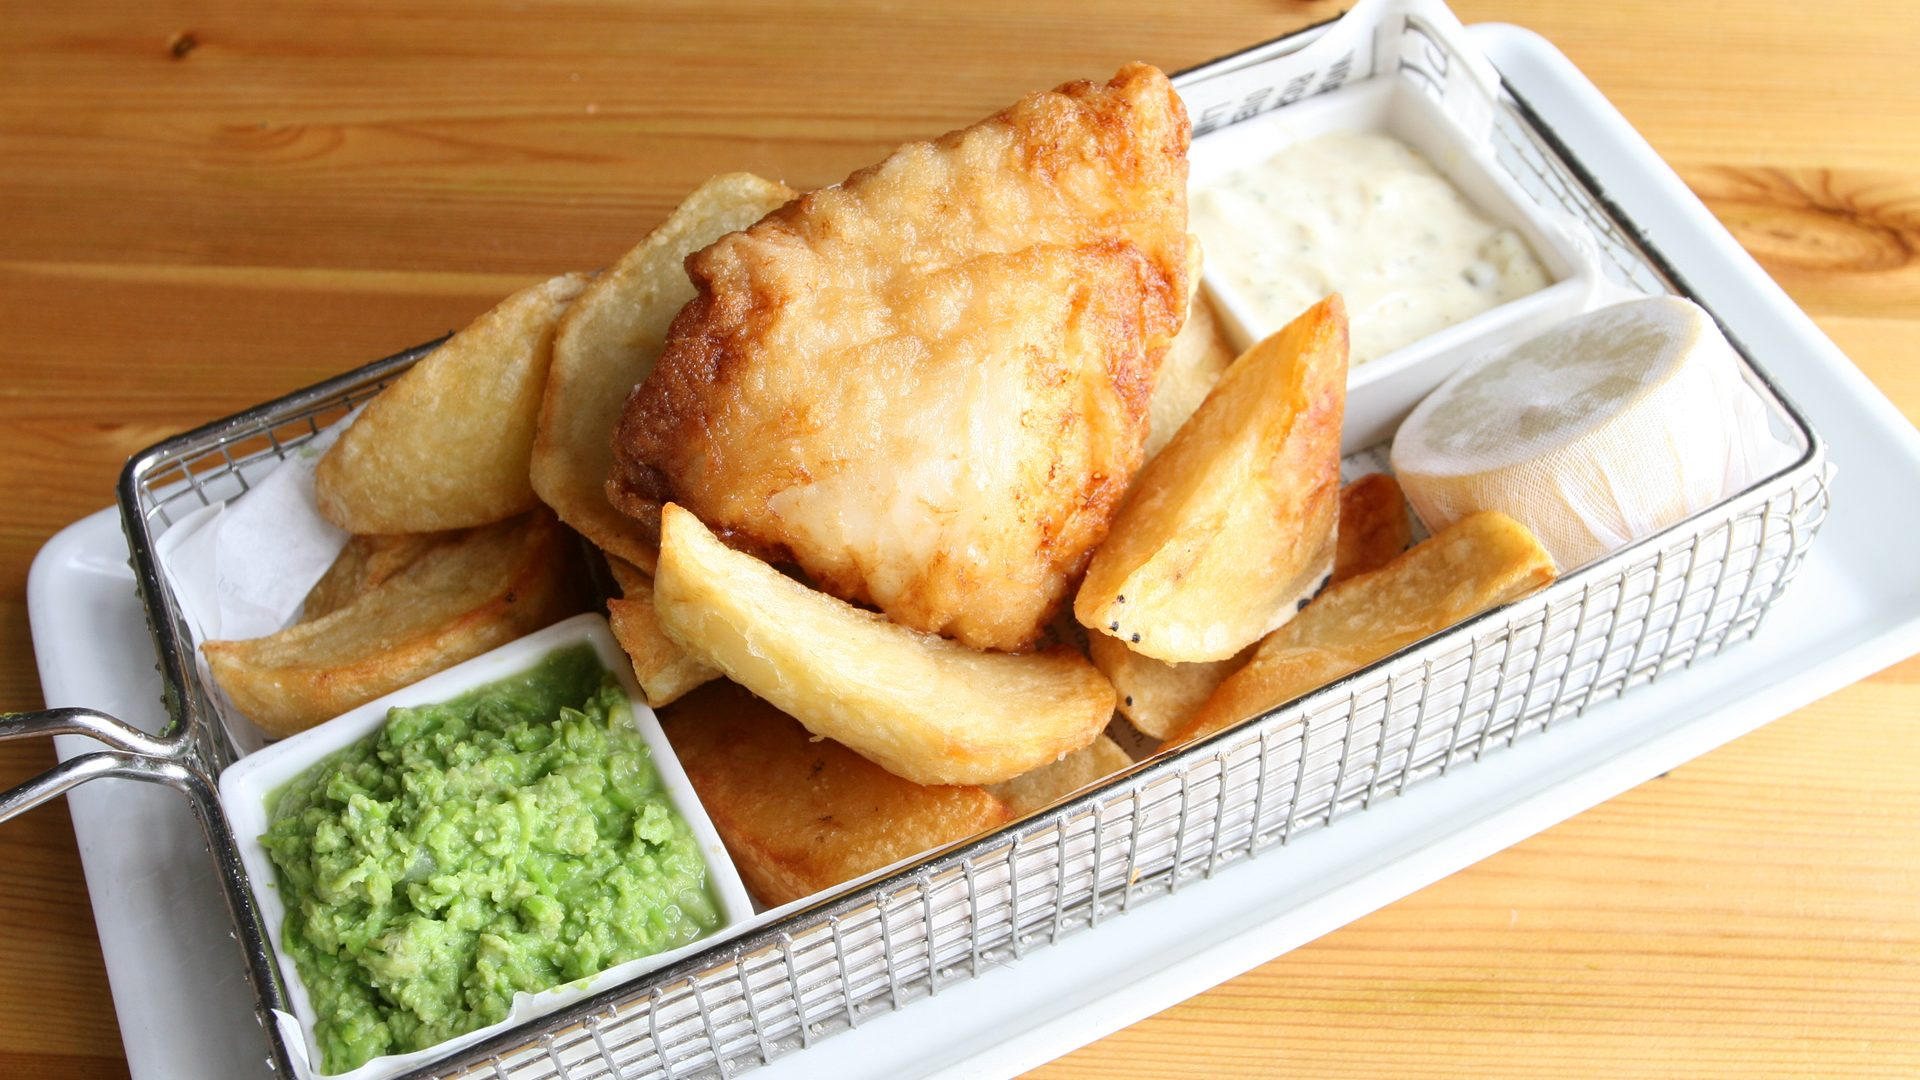 Tuesdays: Fish & Chips for £5? Yes Please...